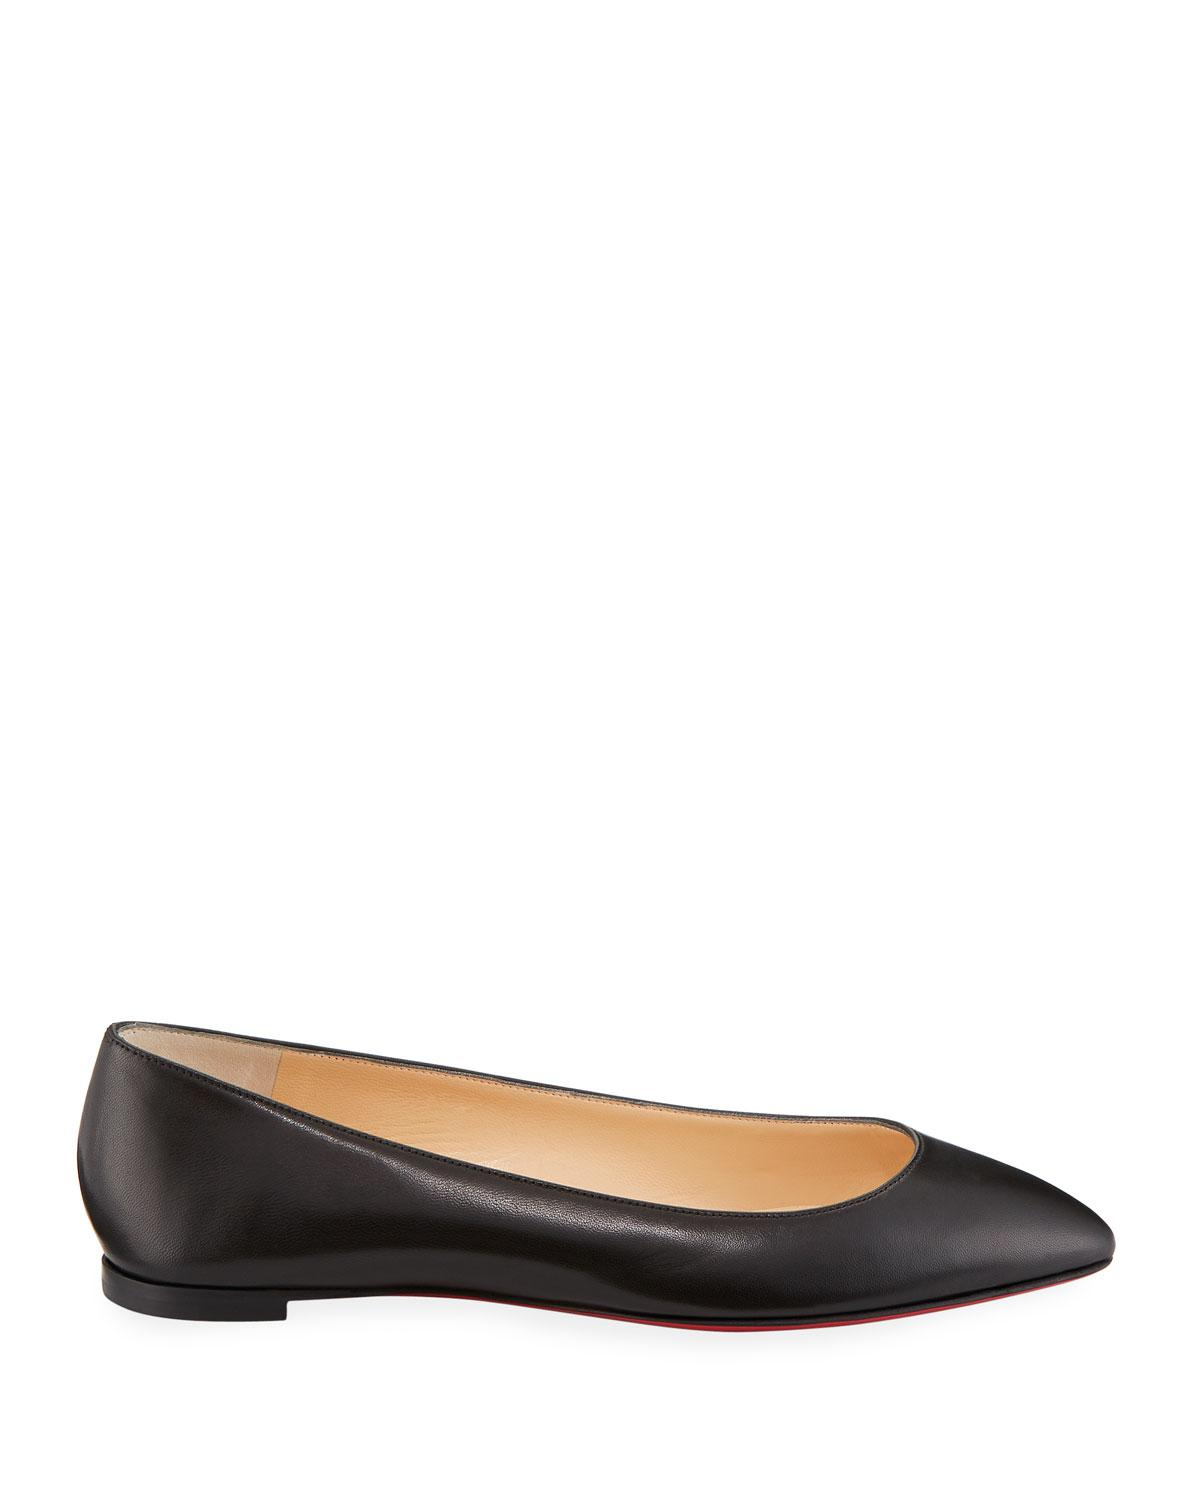 8193922569b6 Lyst - Christian Louboutin Eloise Napa Leather Red Sole Flat in Black